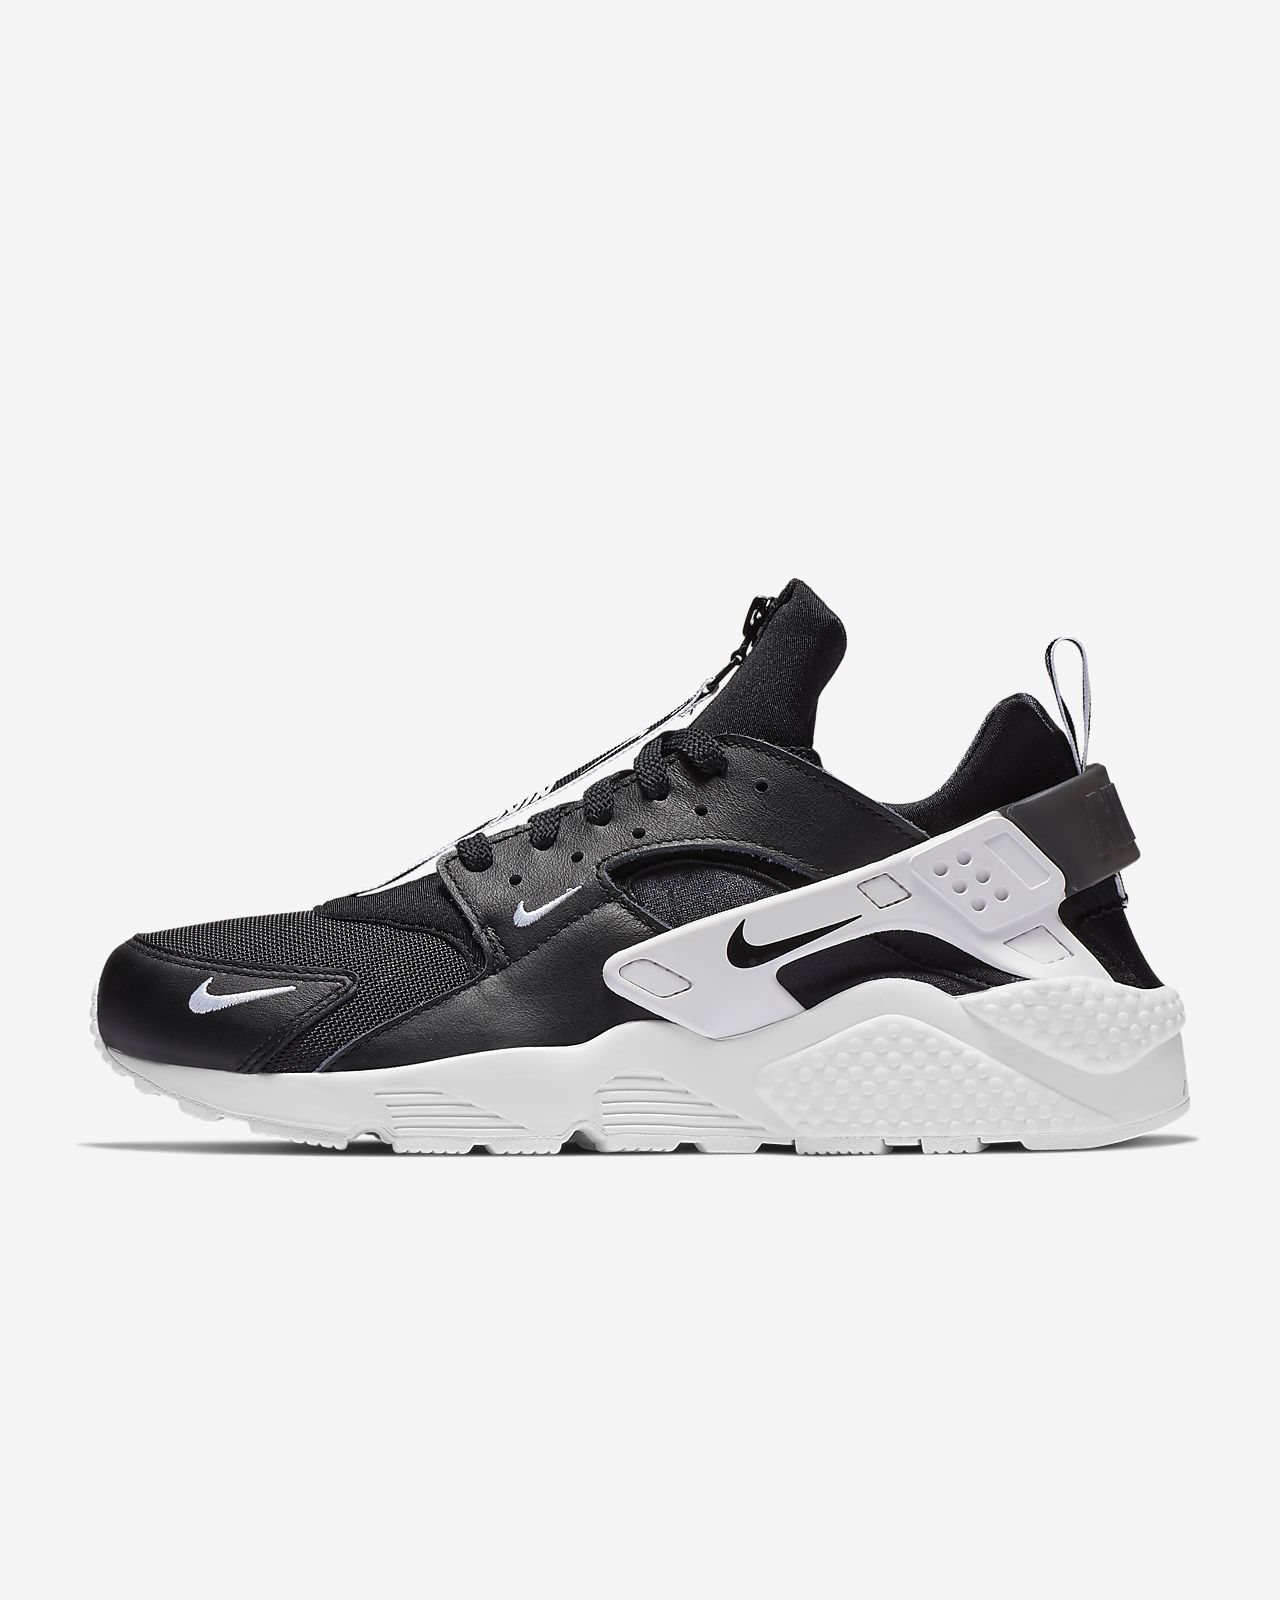 check out 7a0c0 d26de ... Nike Air Huarache Run Premium Zip Mens Shoe